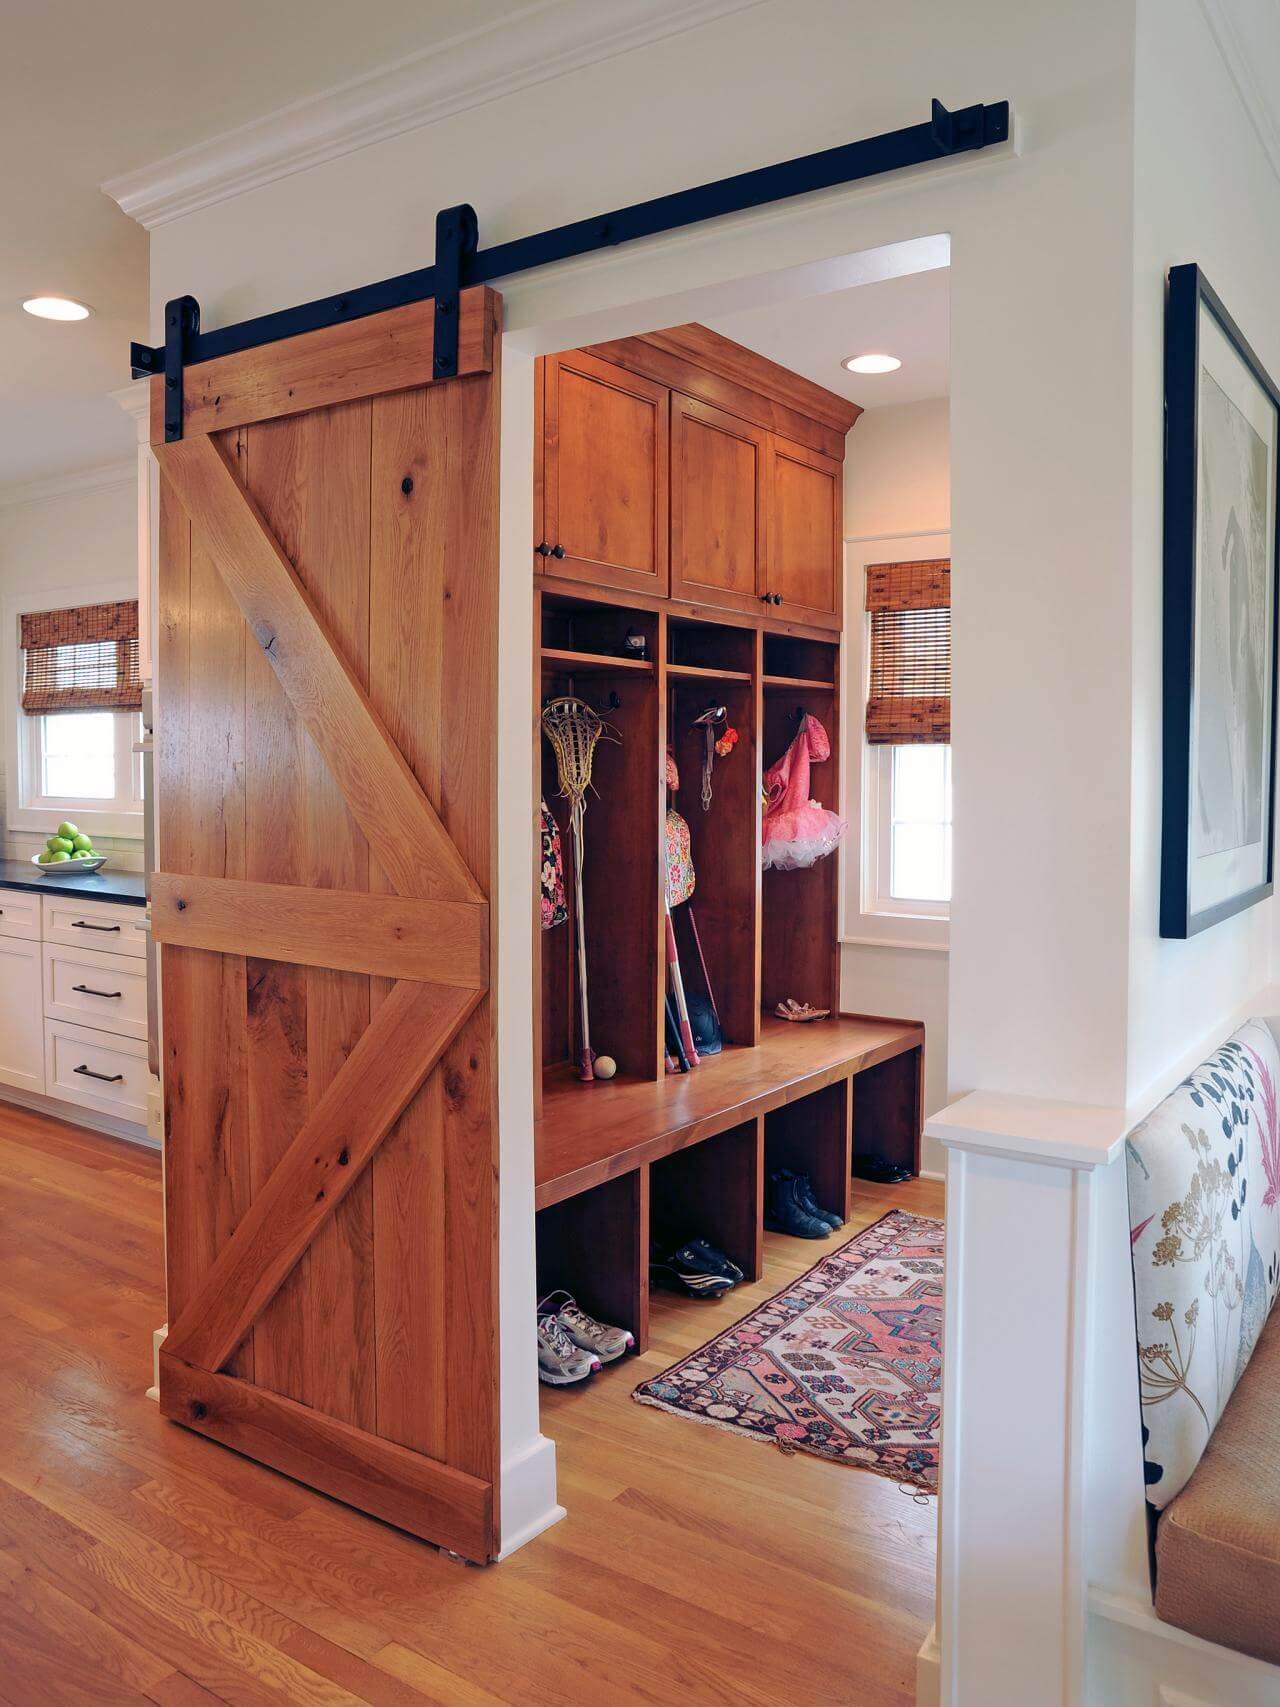 House plans with mudroom entrance